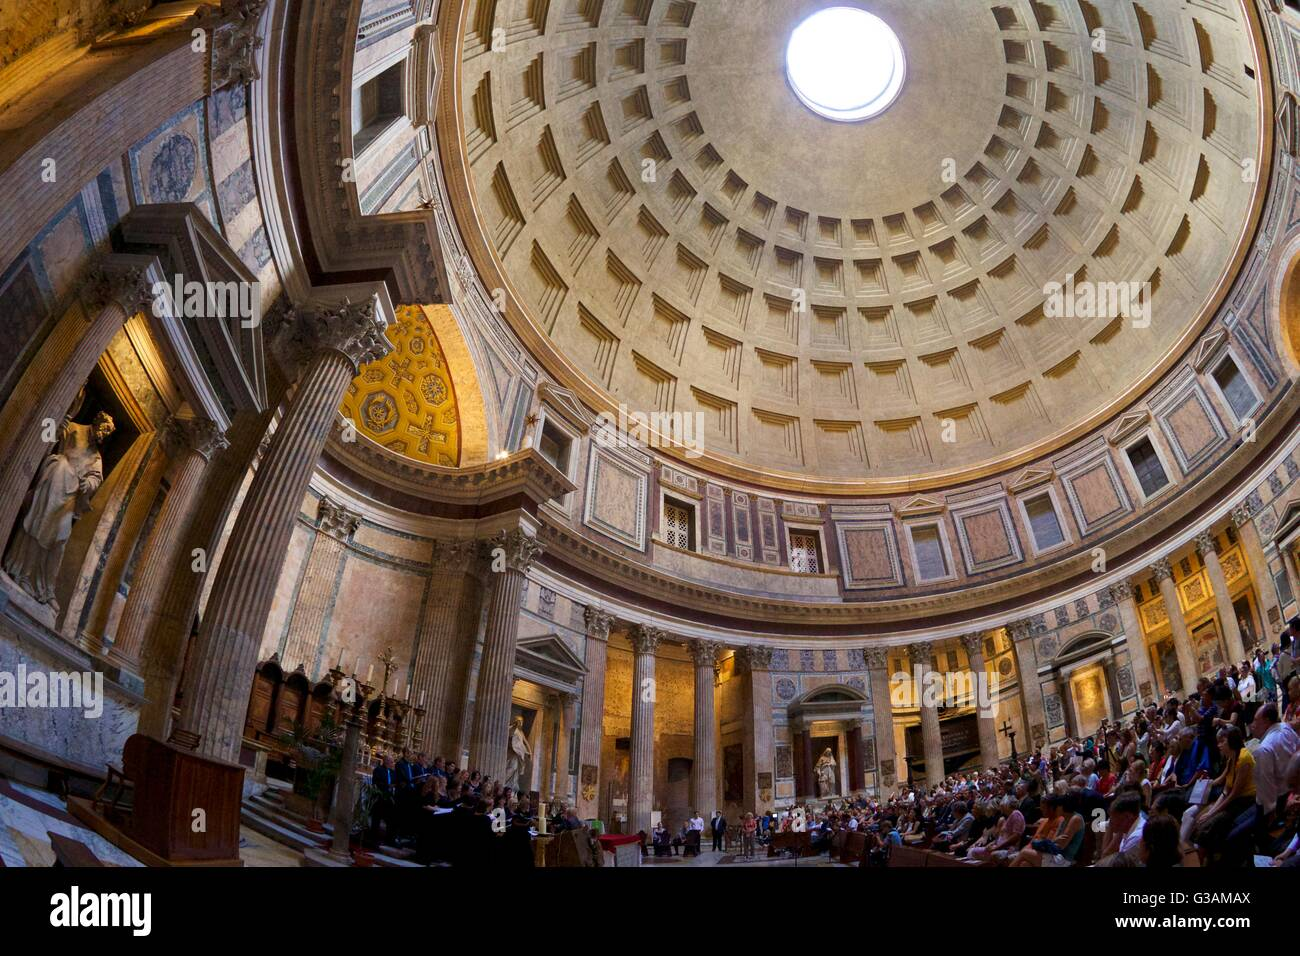 Interior view of choral concert, Pantheon, Rome, Italy - Stock Image